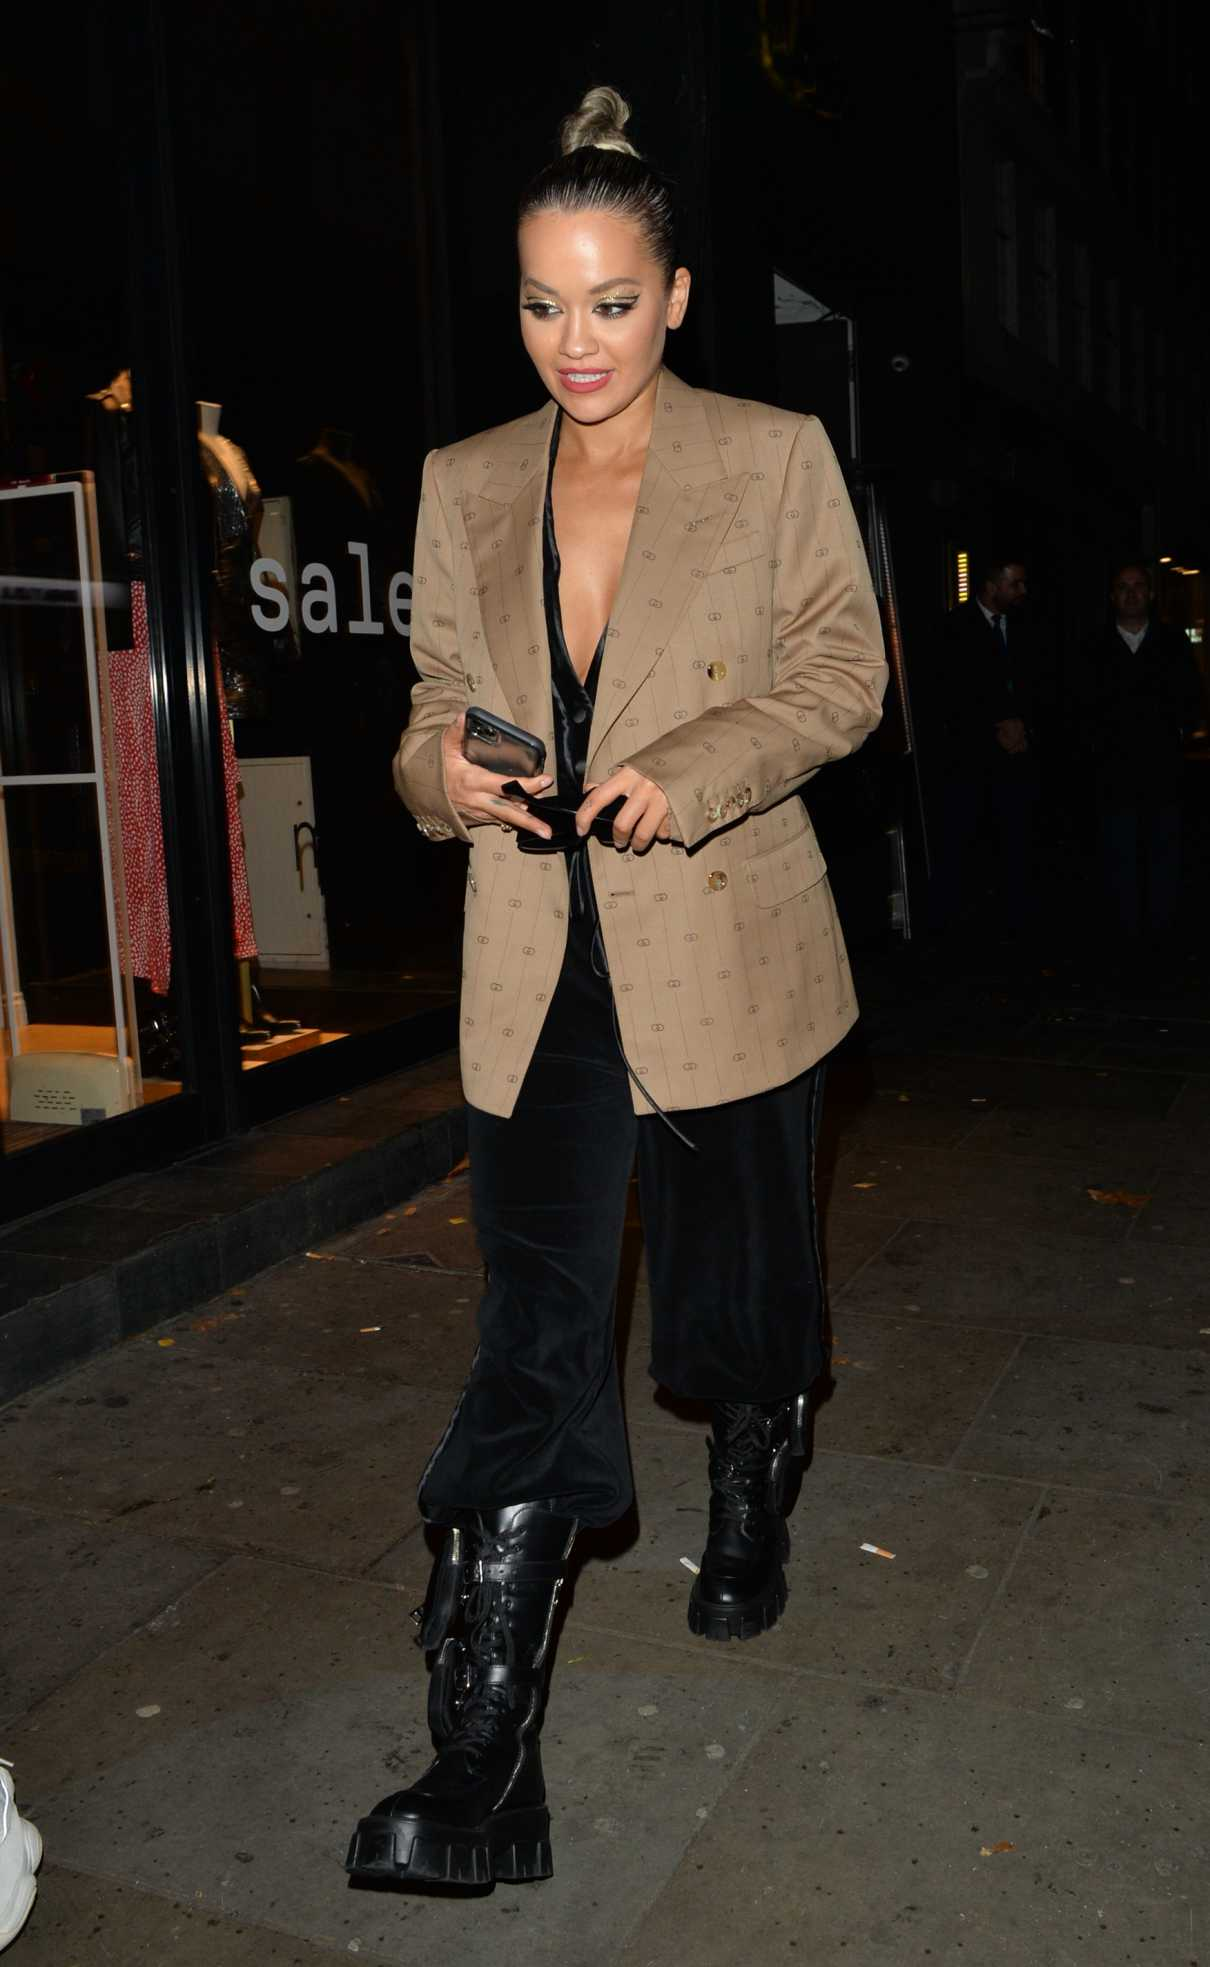 Rita Ora in a Beige Blazer Leaves Ours Restaurant in Kensington 12/07/2019